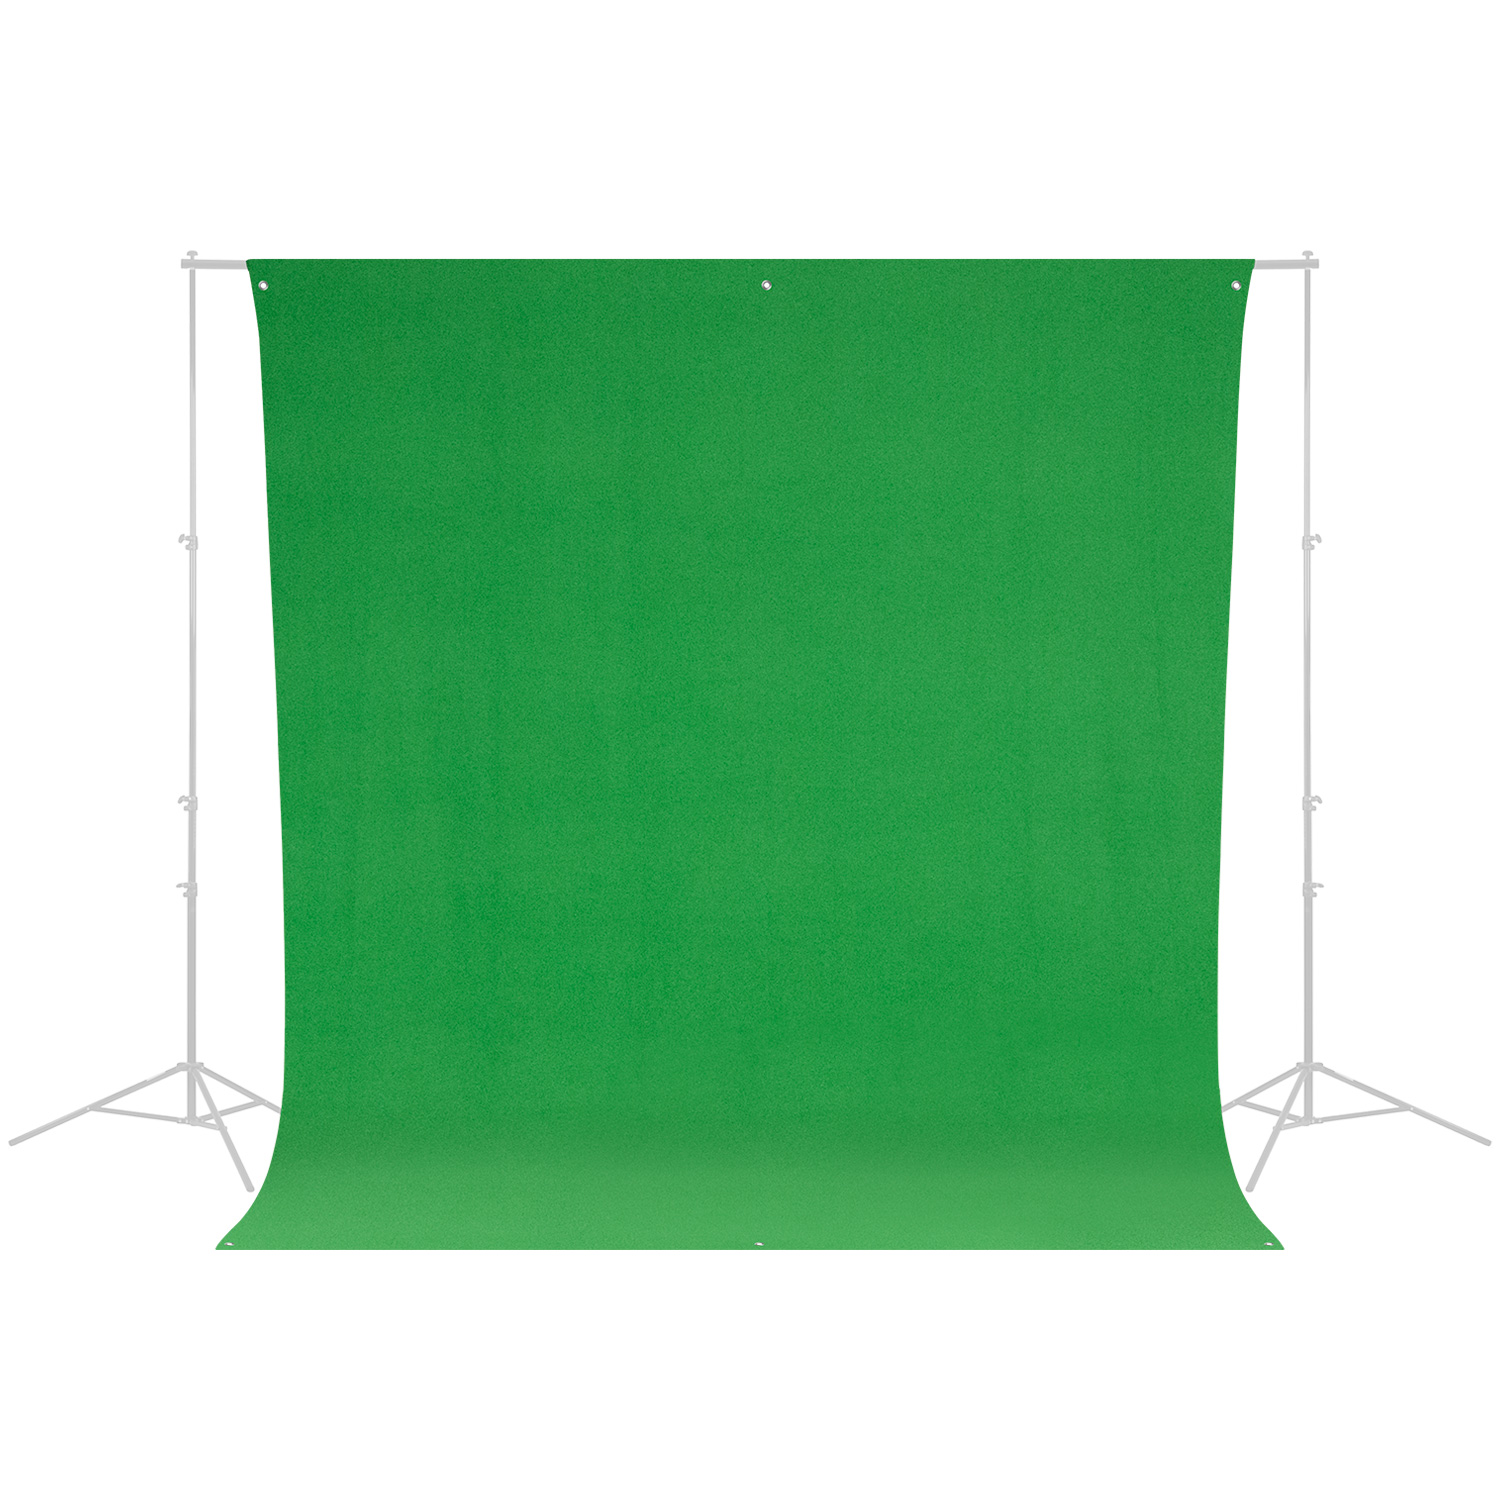 9' x 10' Wrinkle-Resistant Chroma-Key Backdrop (Green Screen)